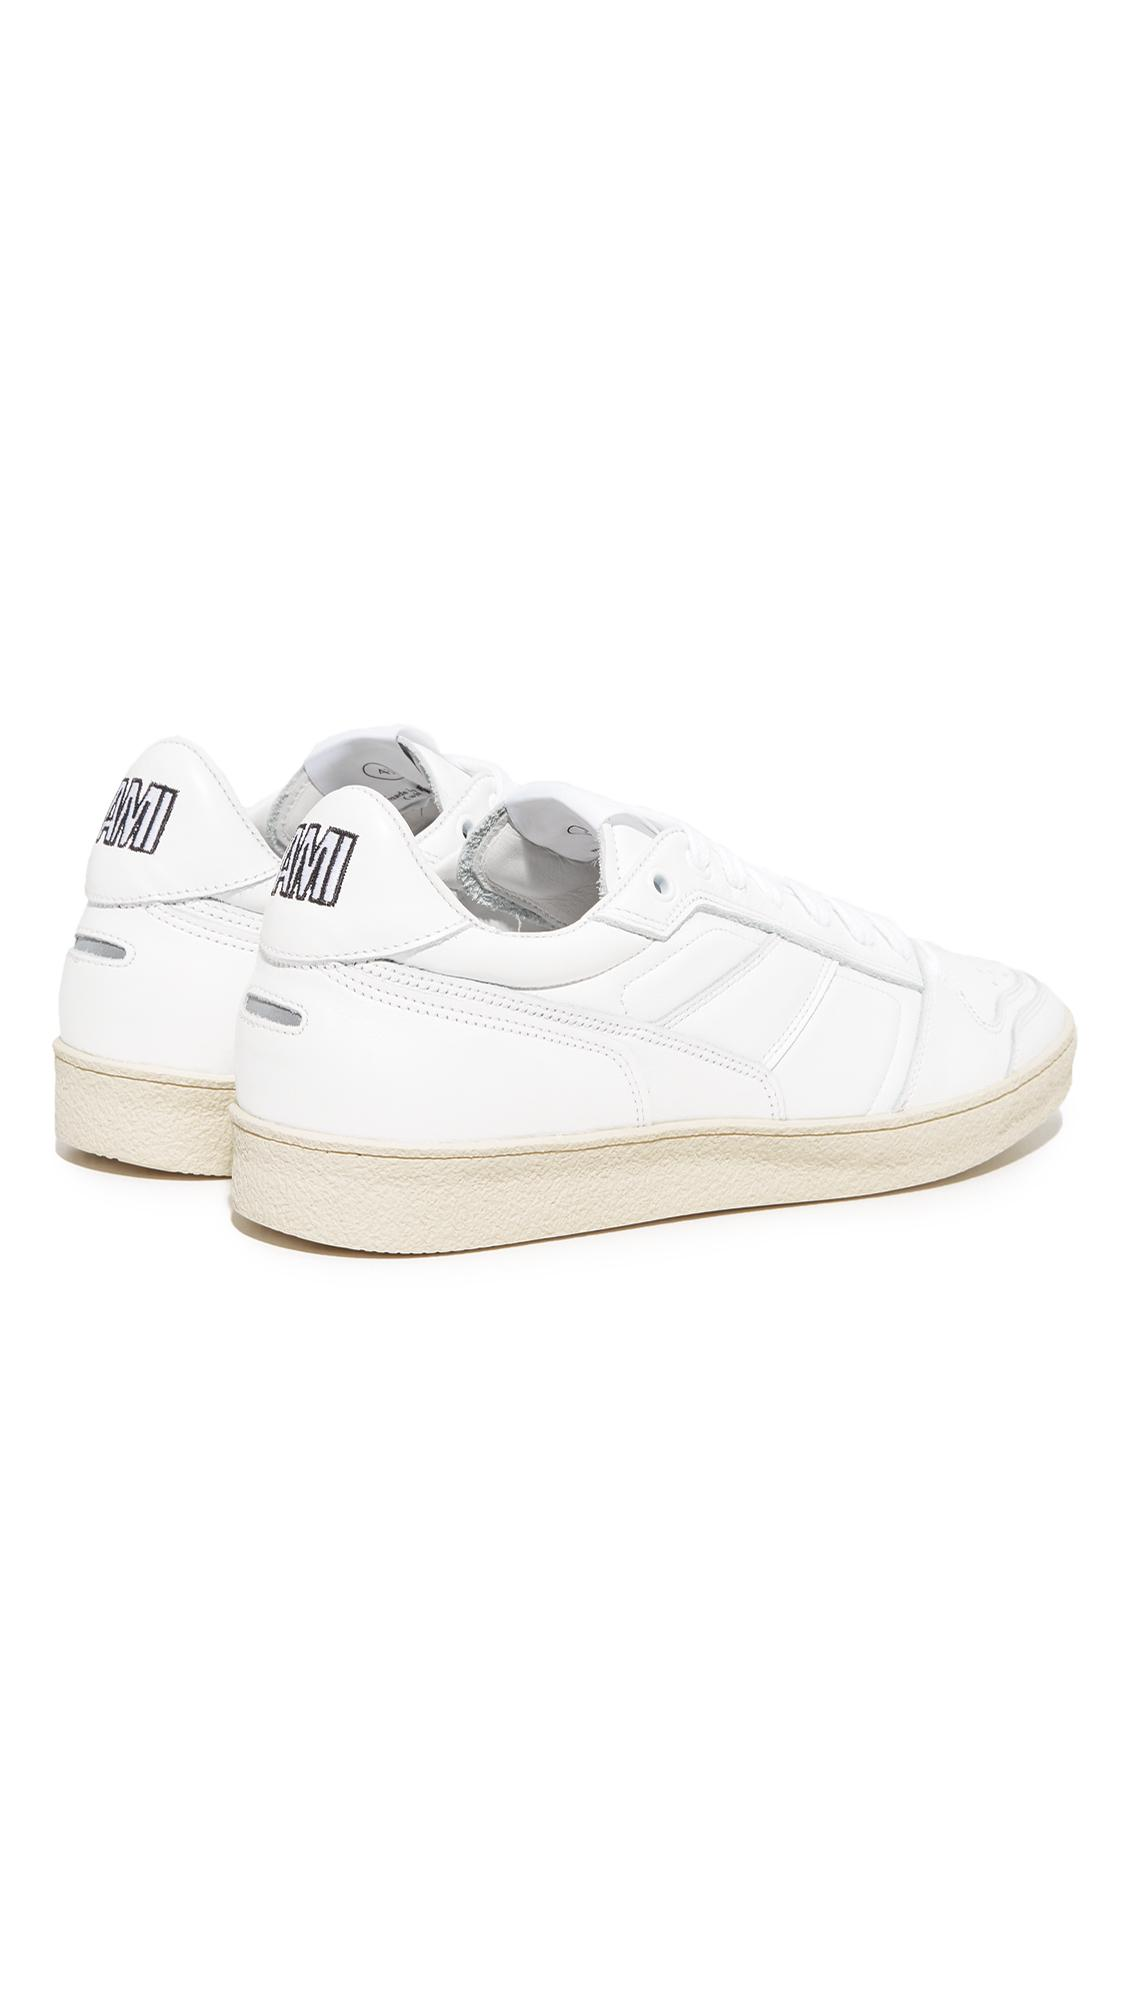 AMI Leather Low Top Trainers in White for Men